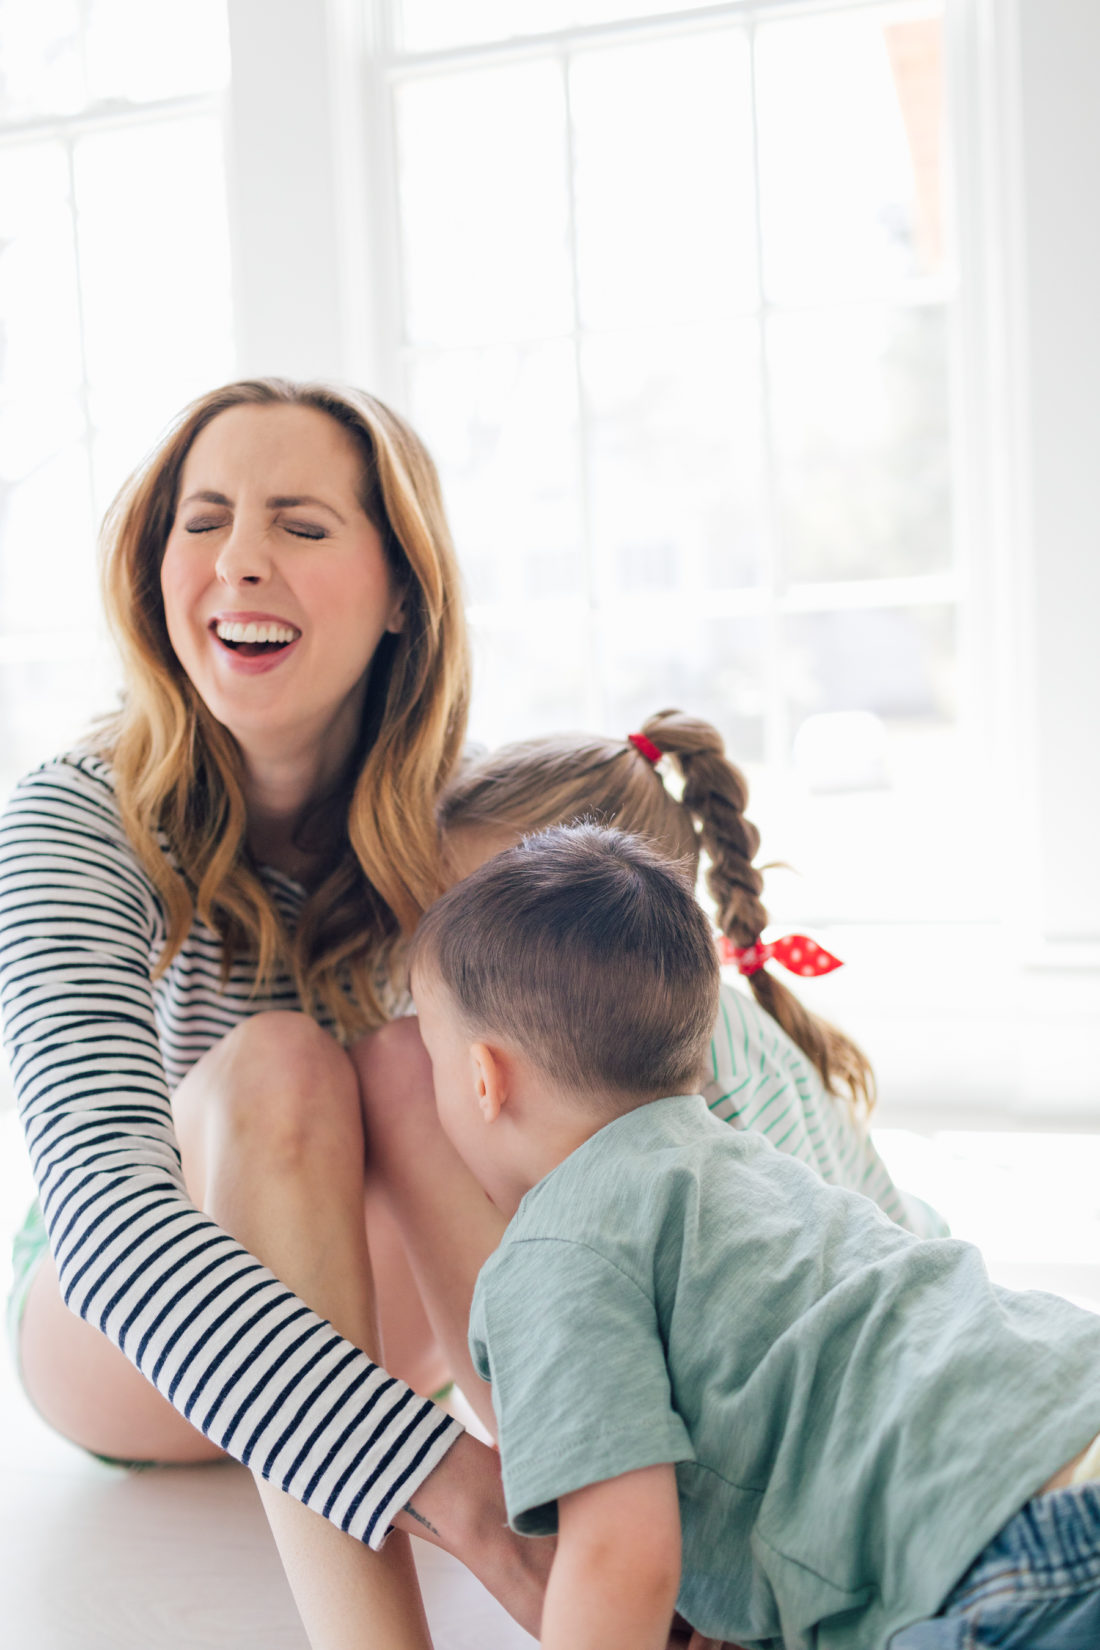 Eva Amurri Martino of Happily Eva After plays with her kids Marlowe and Major on the floor of their new home in Connecticut